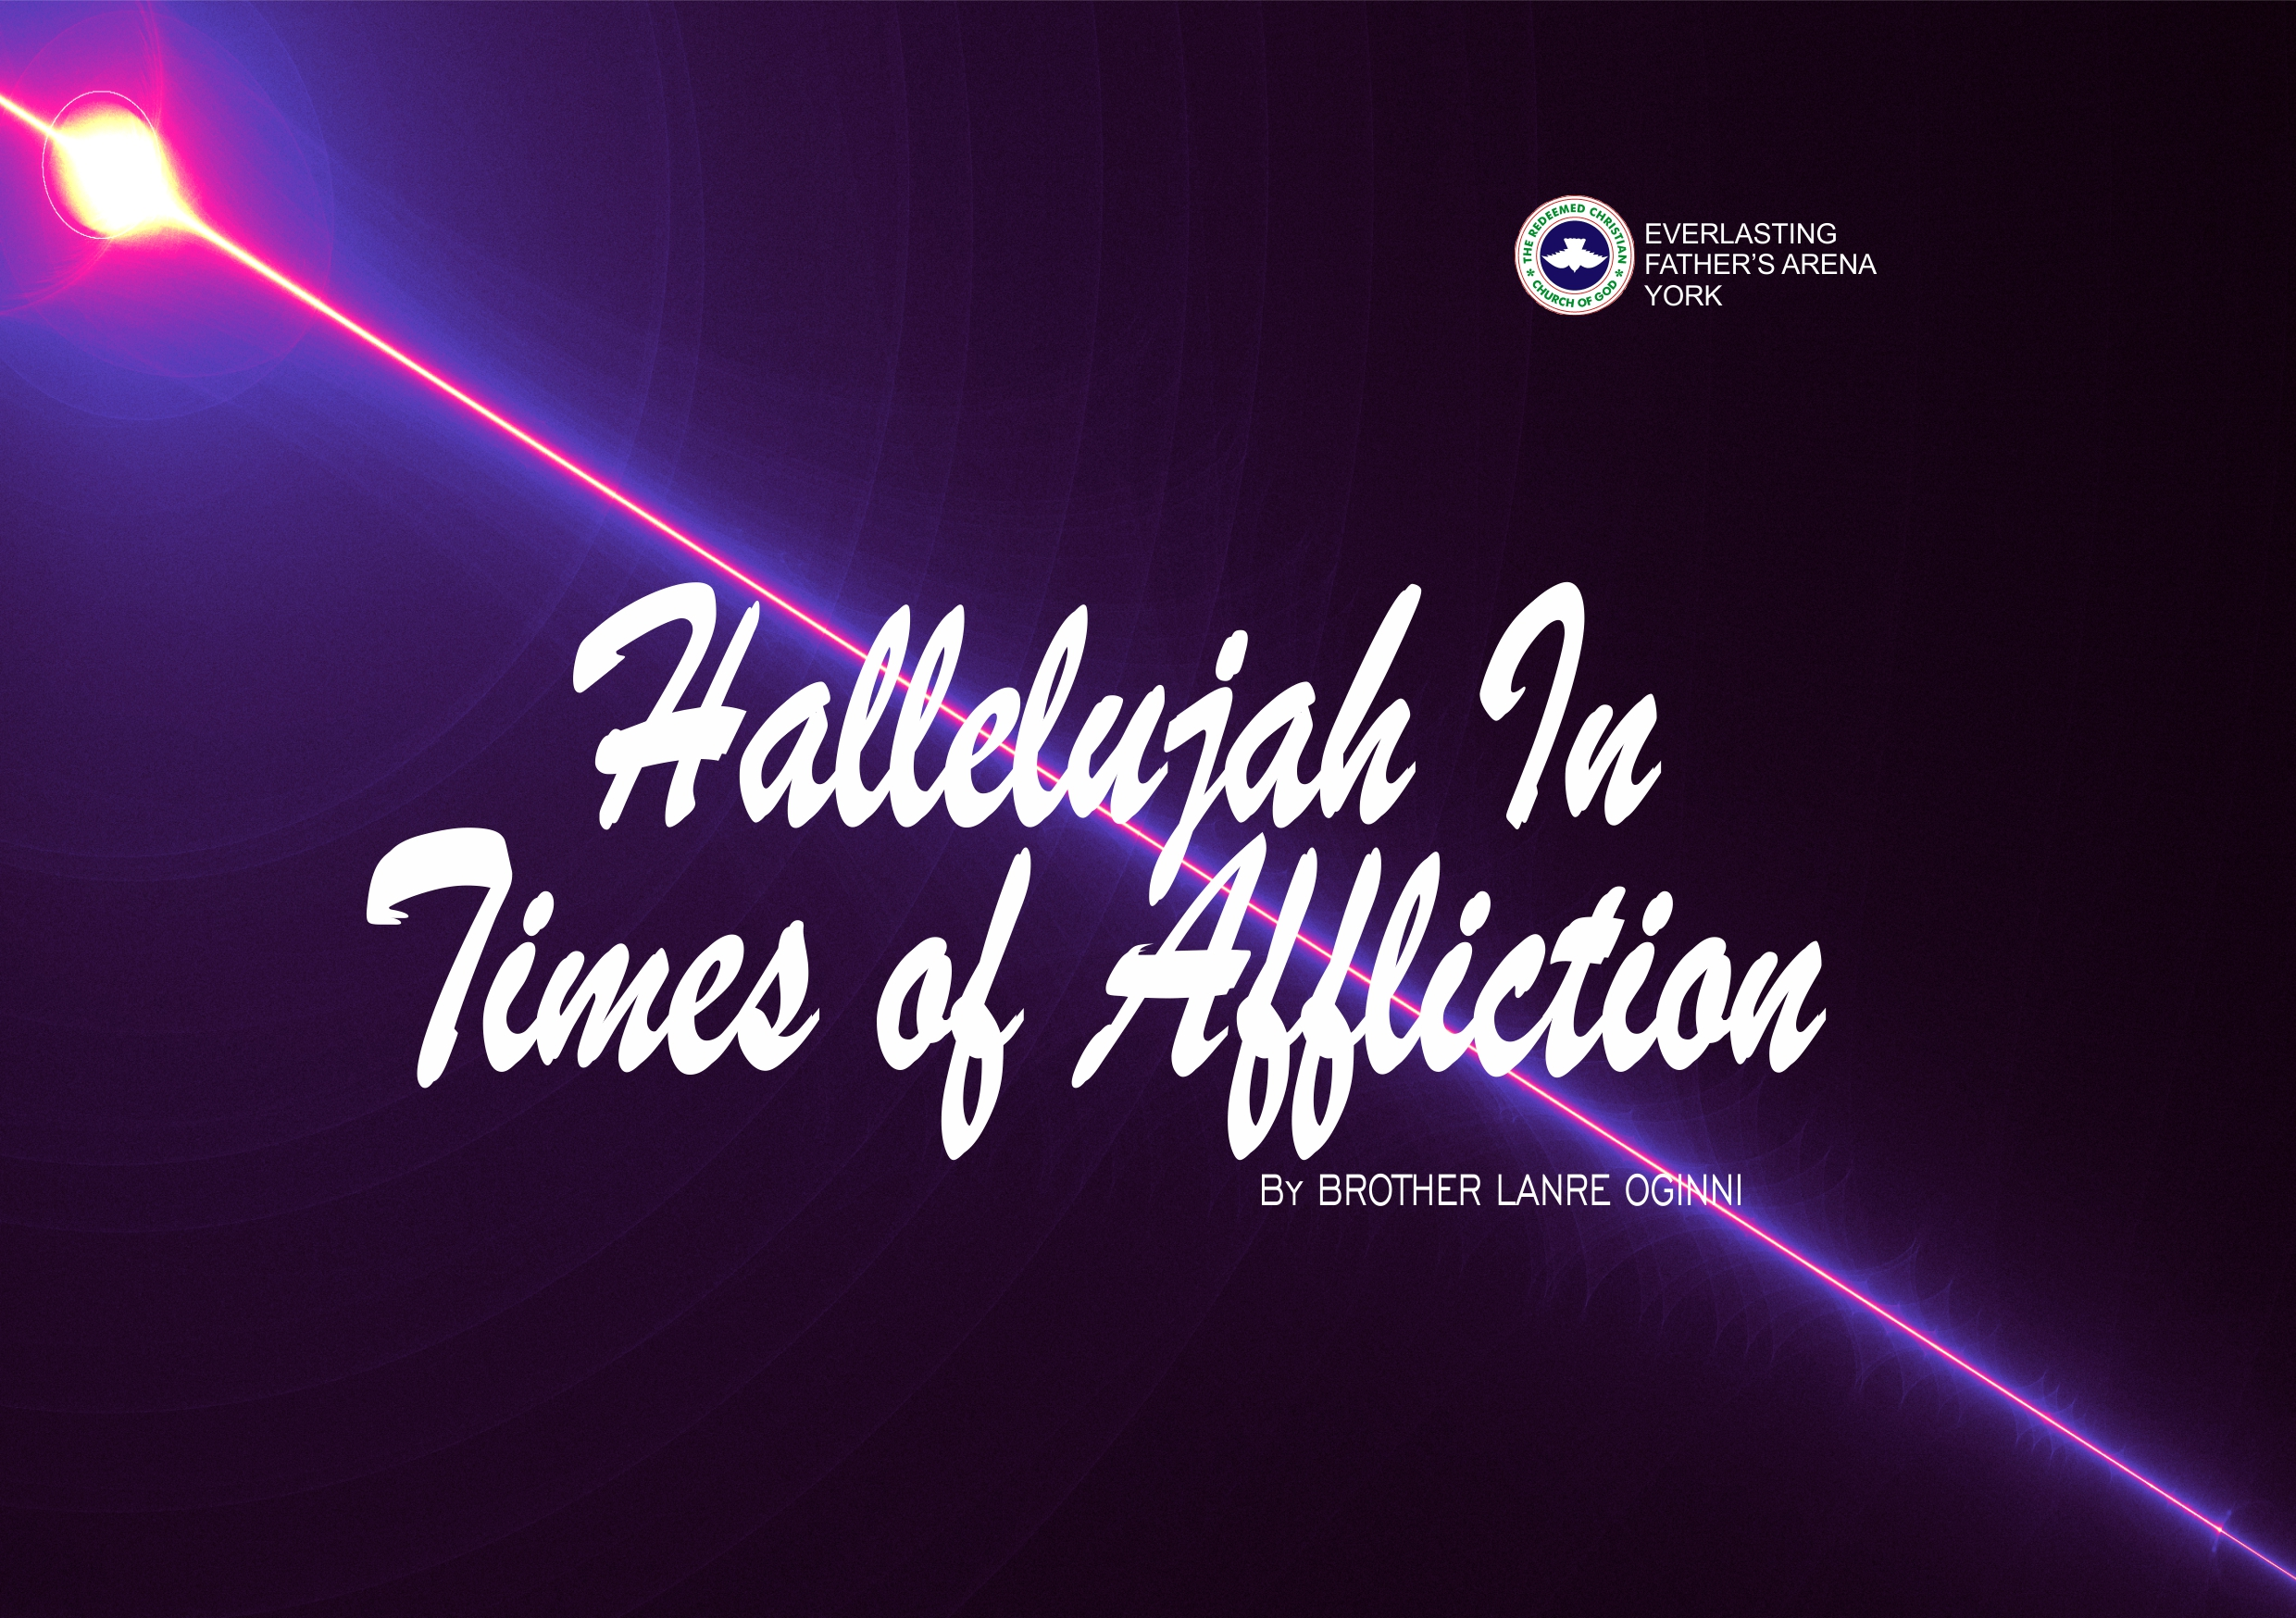 Hallelujah in Times of Affliction, by Brother Lanre Oginni